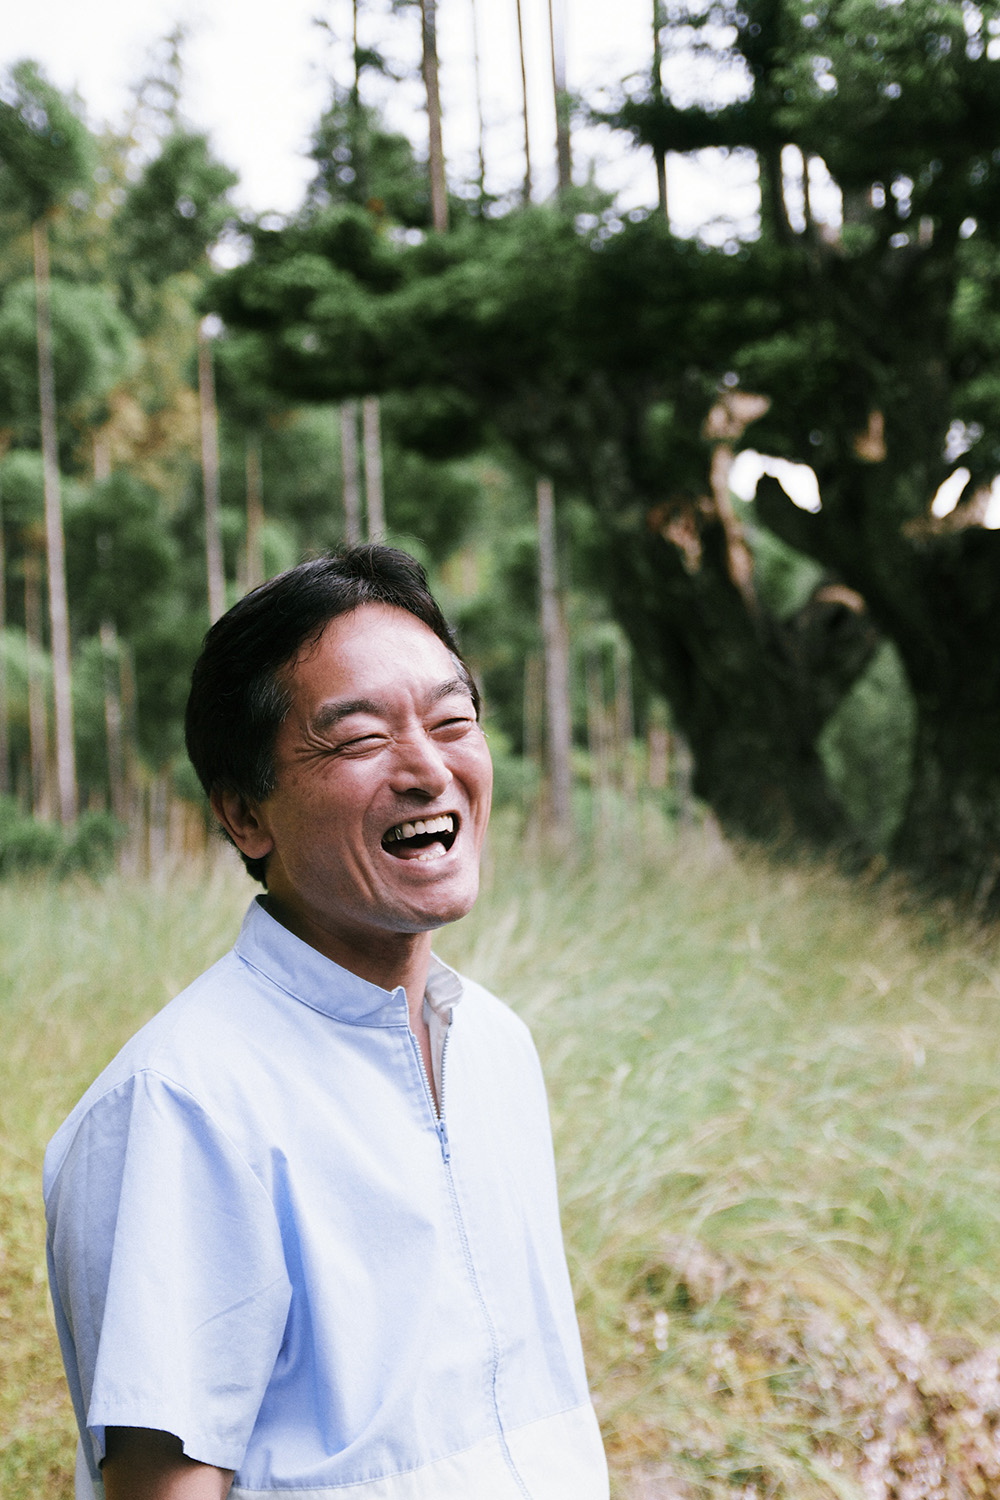 Our friend Nakata-san in his magical Kitayama forest in Kyoto, Japan.